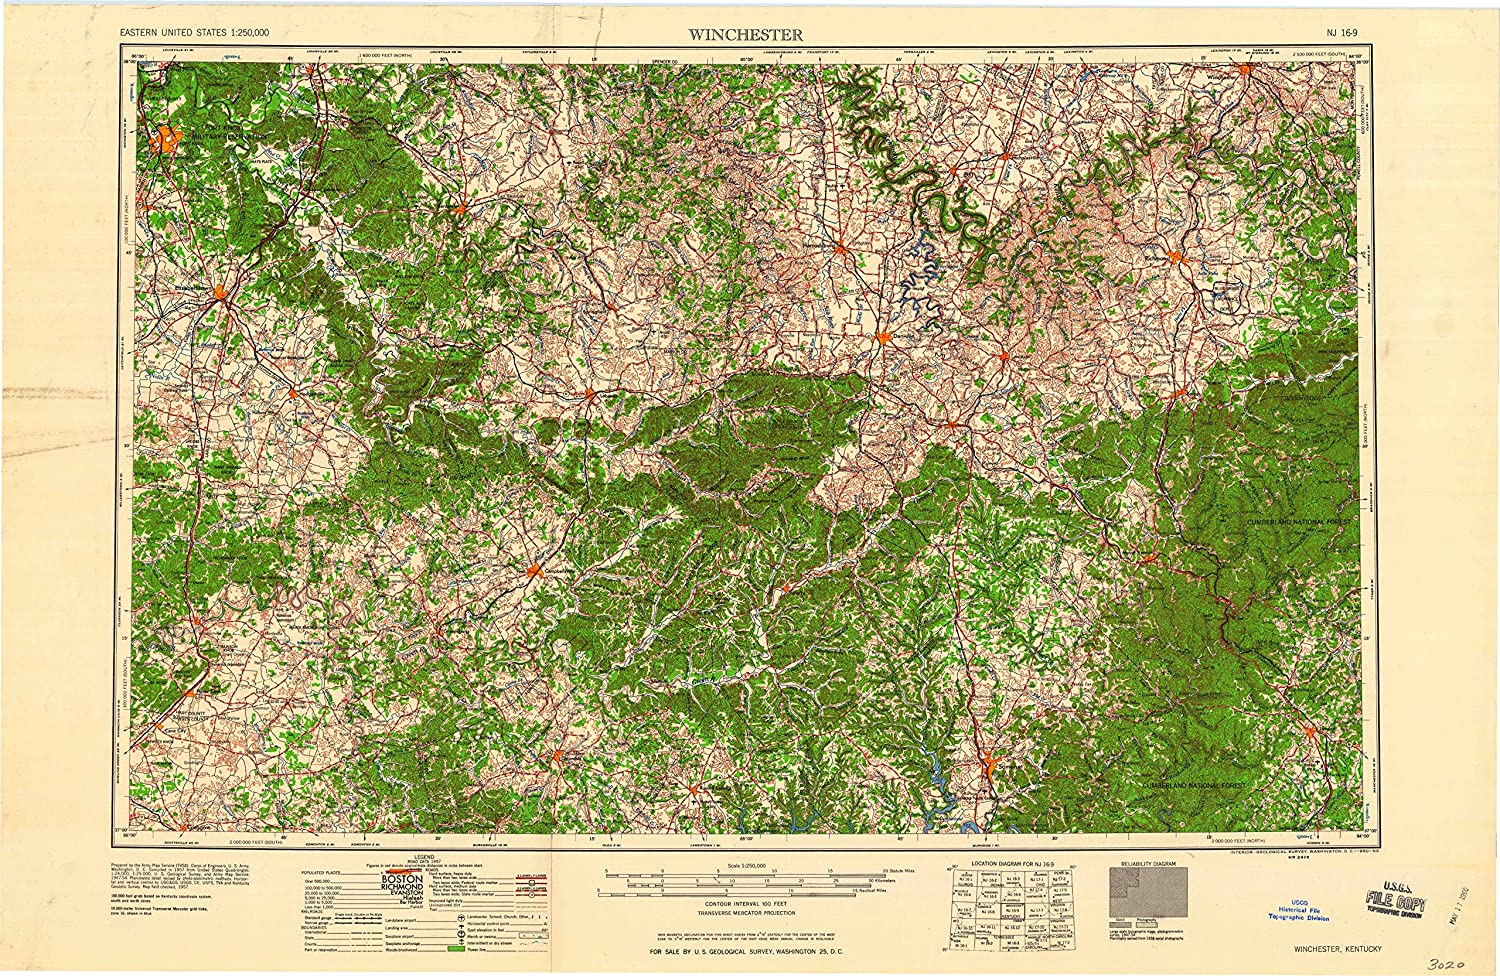 Amazon.com : YellowMaps Winchester KY topo map, 1:250000 Scale, 1 X on ky highway map, ky fish and wildlife map, ky area map, louisville ky city limits map, ky border map, ky phone map, lexington ky map, ky tennessee map, ky airport map, kentucky map, ky topographic map, illinois map, ky parks and maps, ky road maps driving directions, ky town map, ky co map, i-64 mile marker map, ky school district map, ky region map, ky county map,